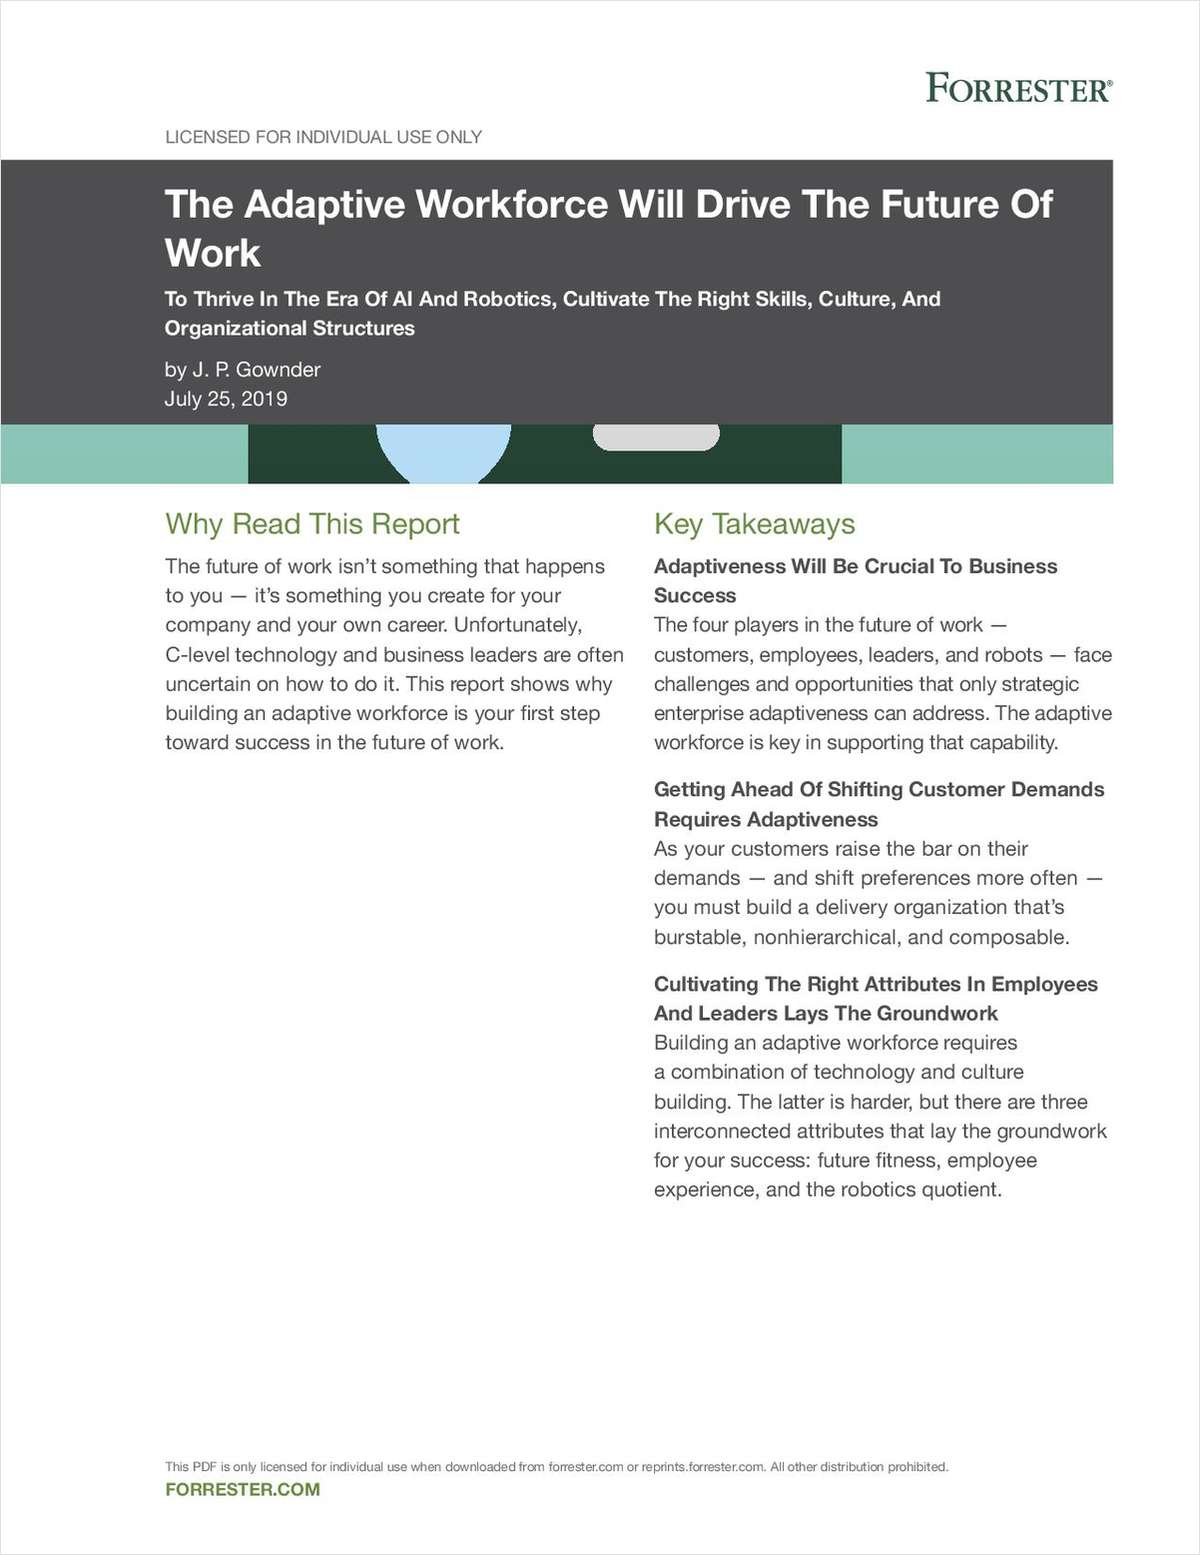 Forrester - The Adaptive Workforce Future of Work